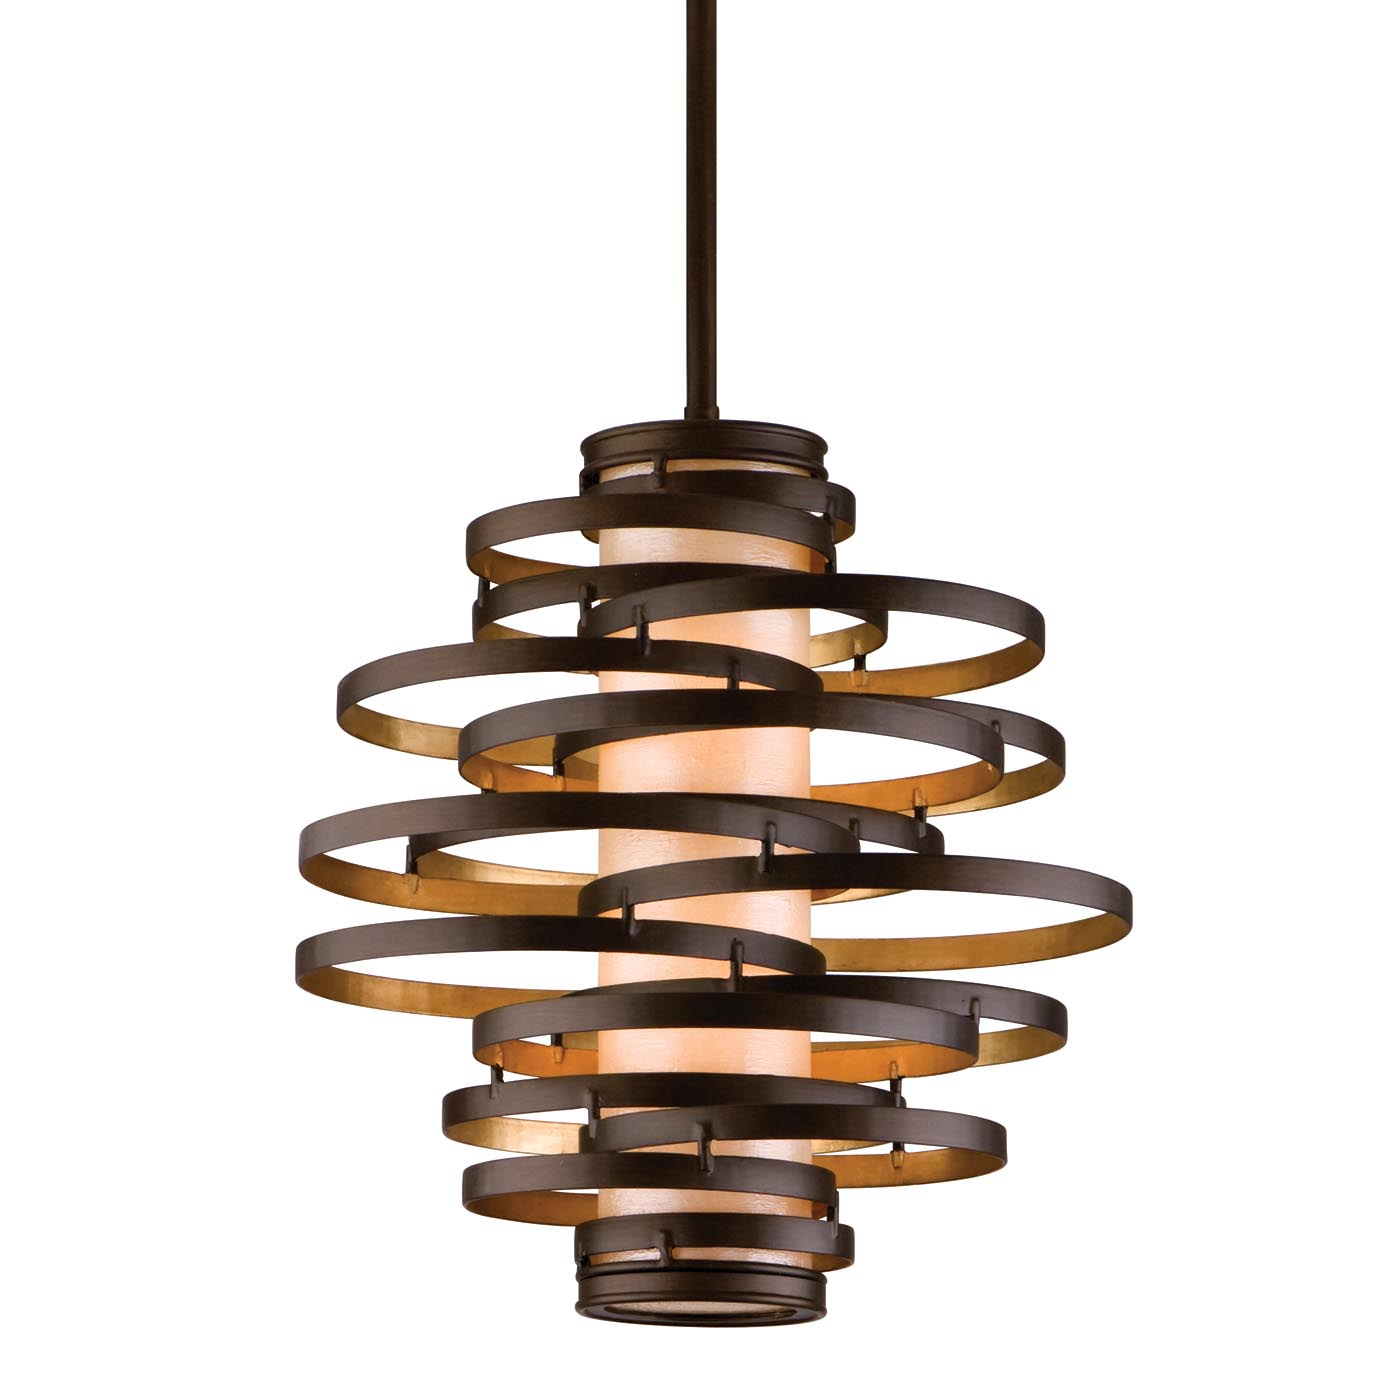 Designer lighting fixtures for home homesfeed for Designer lighting